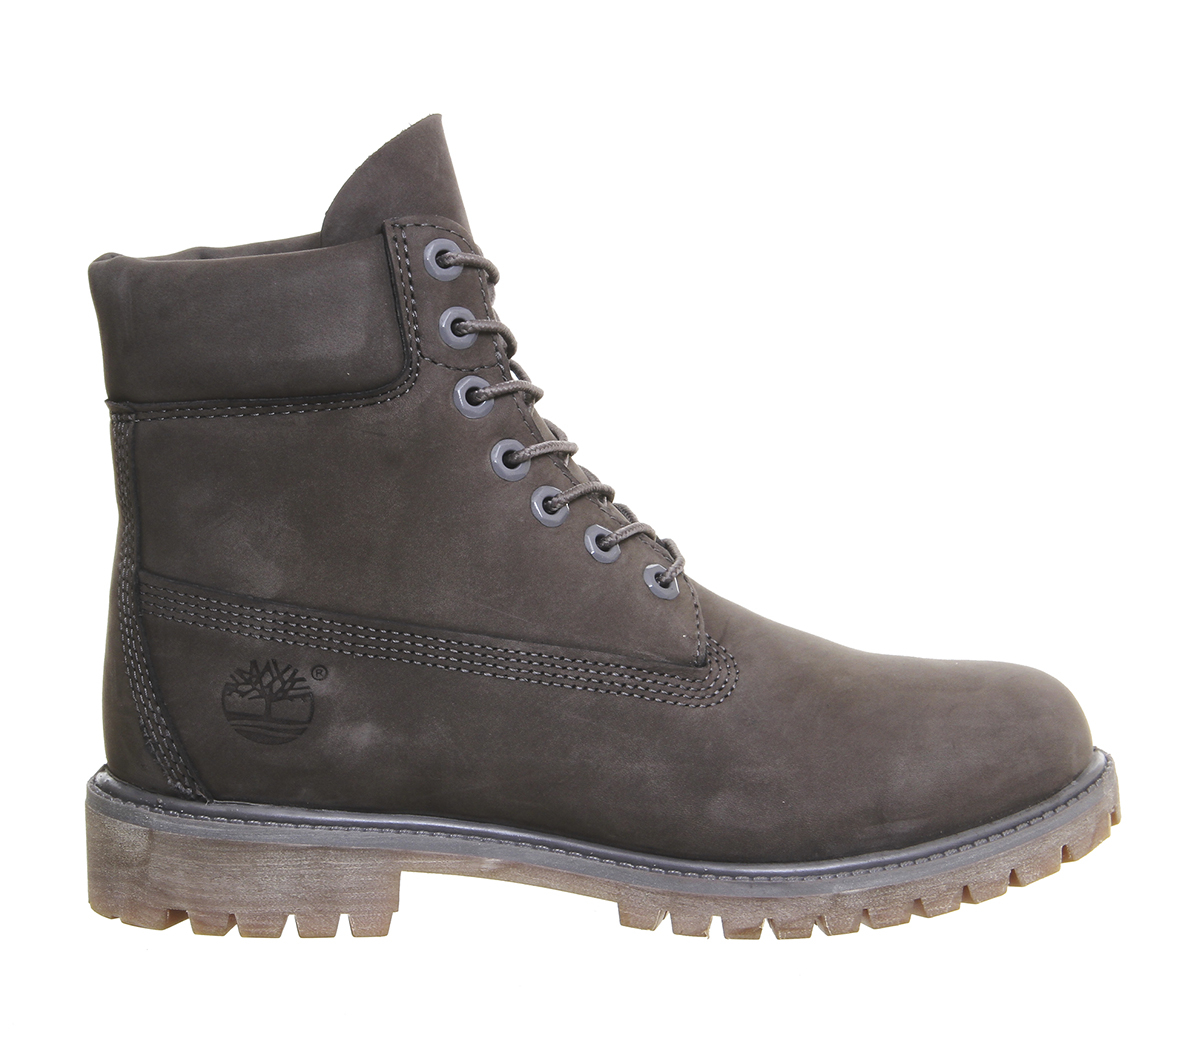 timberland 6 in buck boots in gray for men lyst. Black Bedroom Furniture Sets. Home Design Ideas